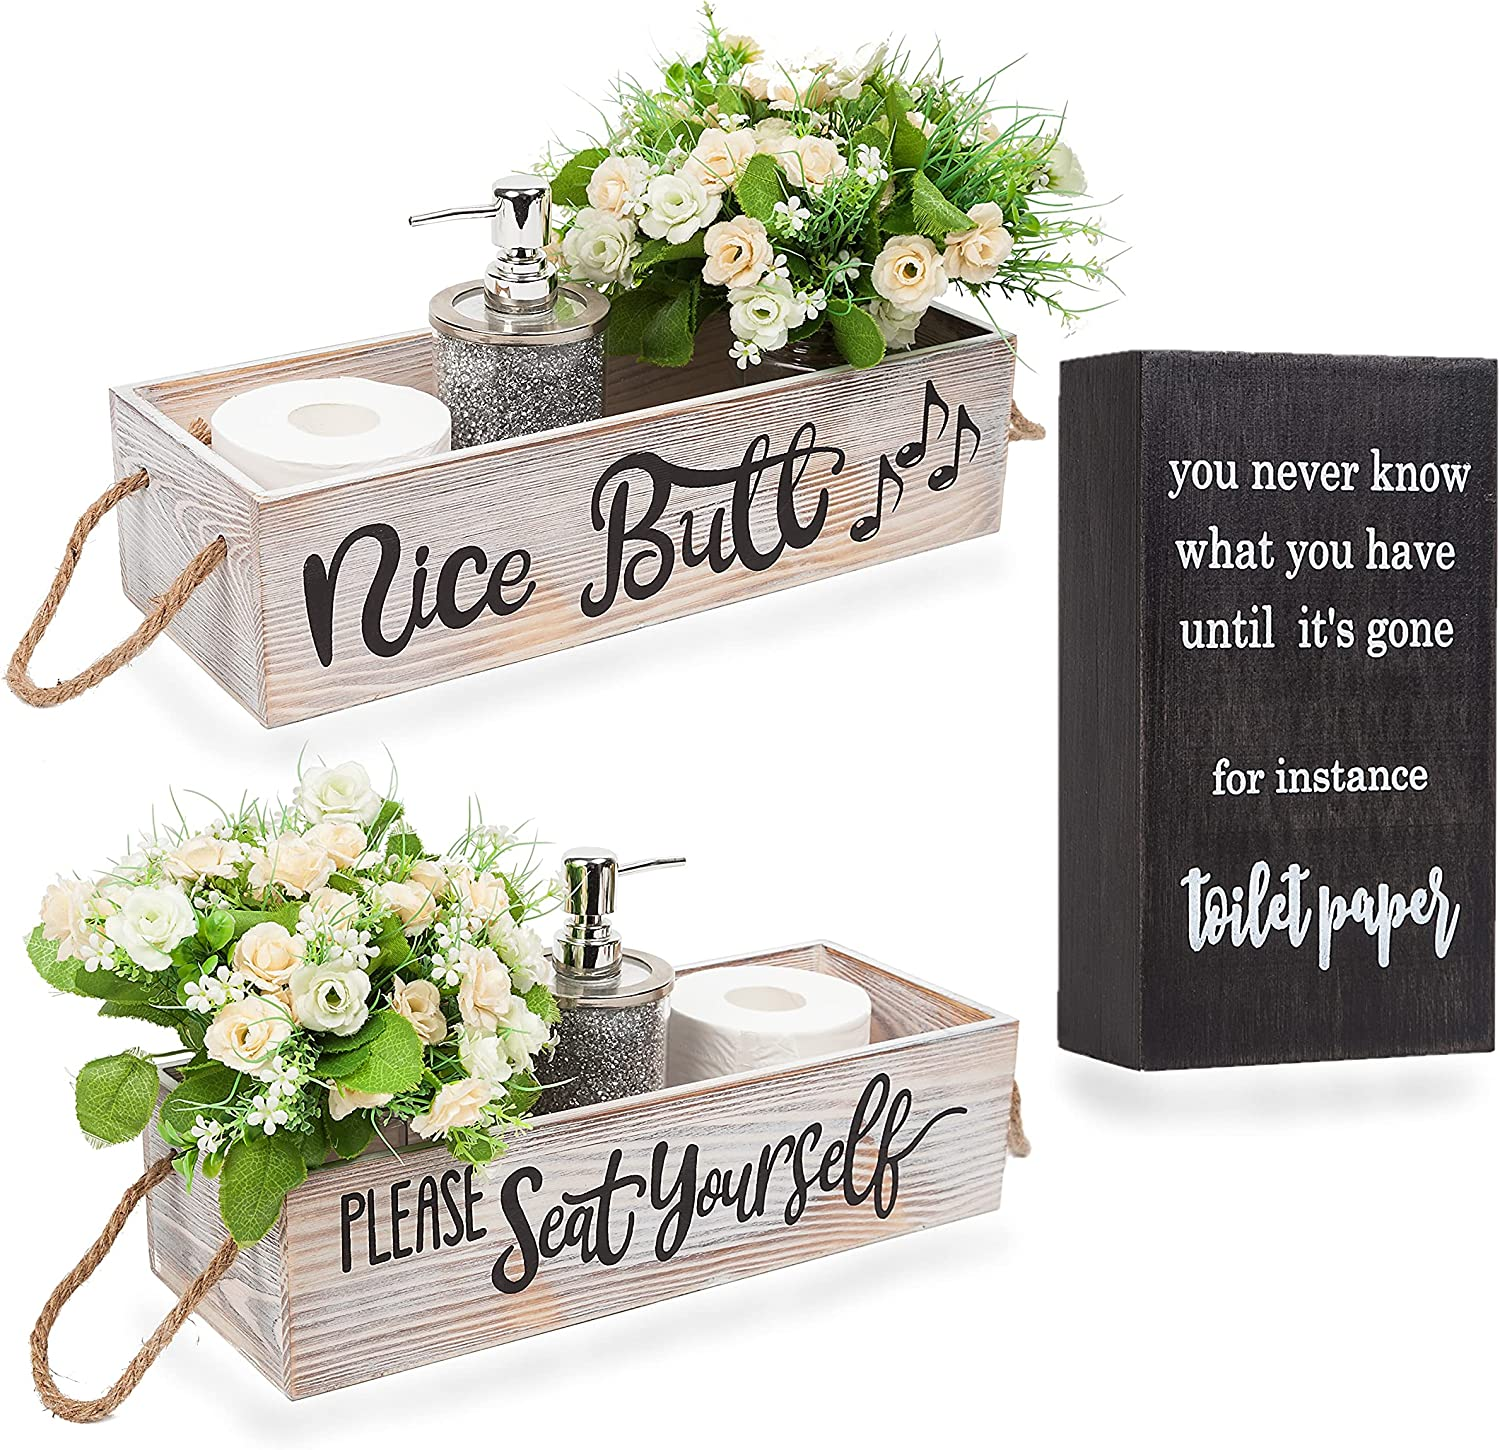 iDelightz Nice Butt Bathroom Decor Box (1 Box) and Cute Box Sign - 2 Sides of Funny Bathroom Signs - Rustic Home Decor / Toilet Paper Storage for Farmhouse Bathroom Decorations (White Washed)